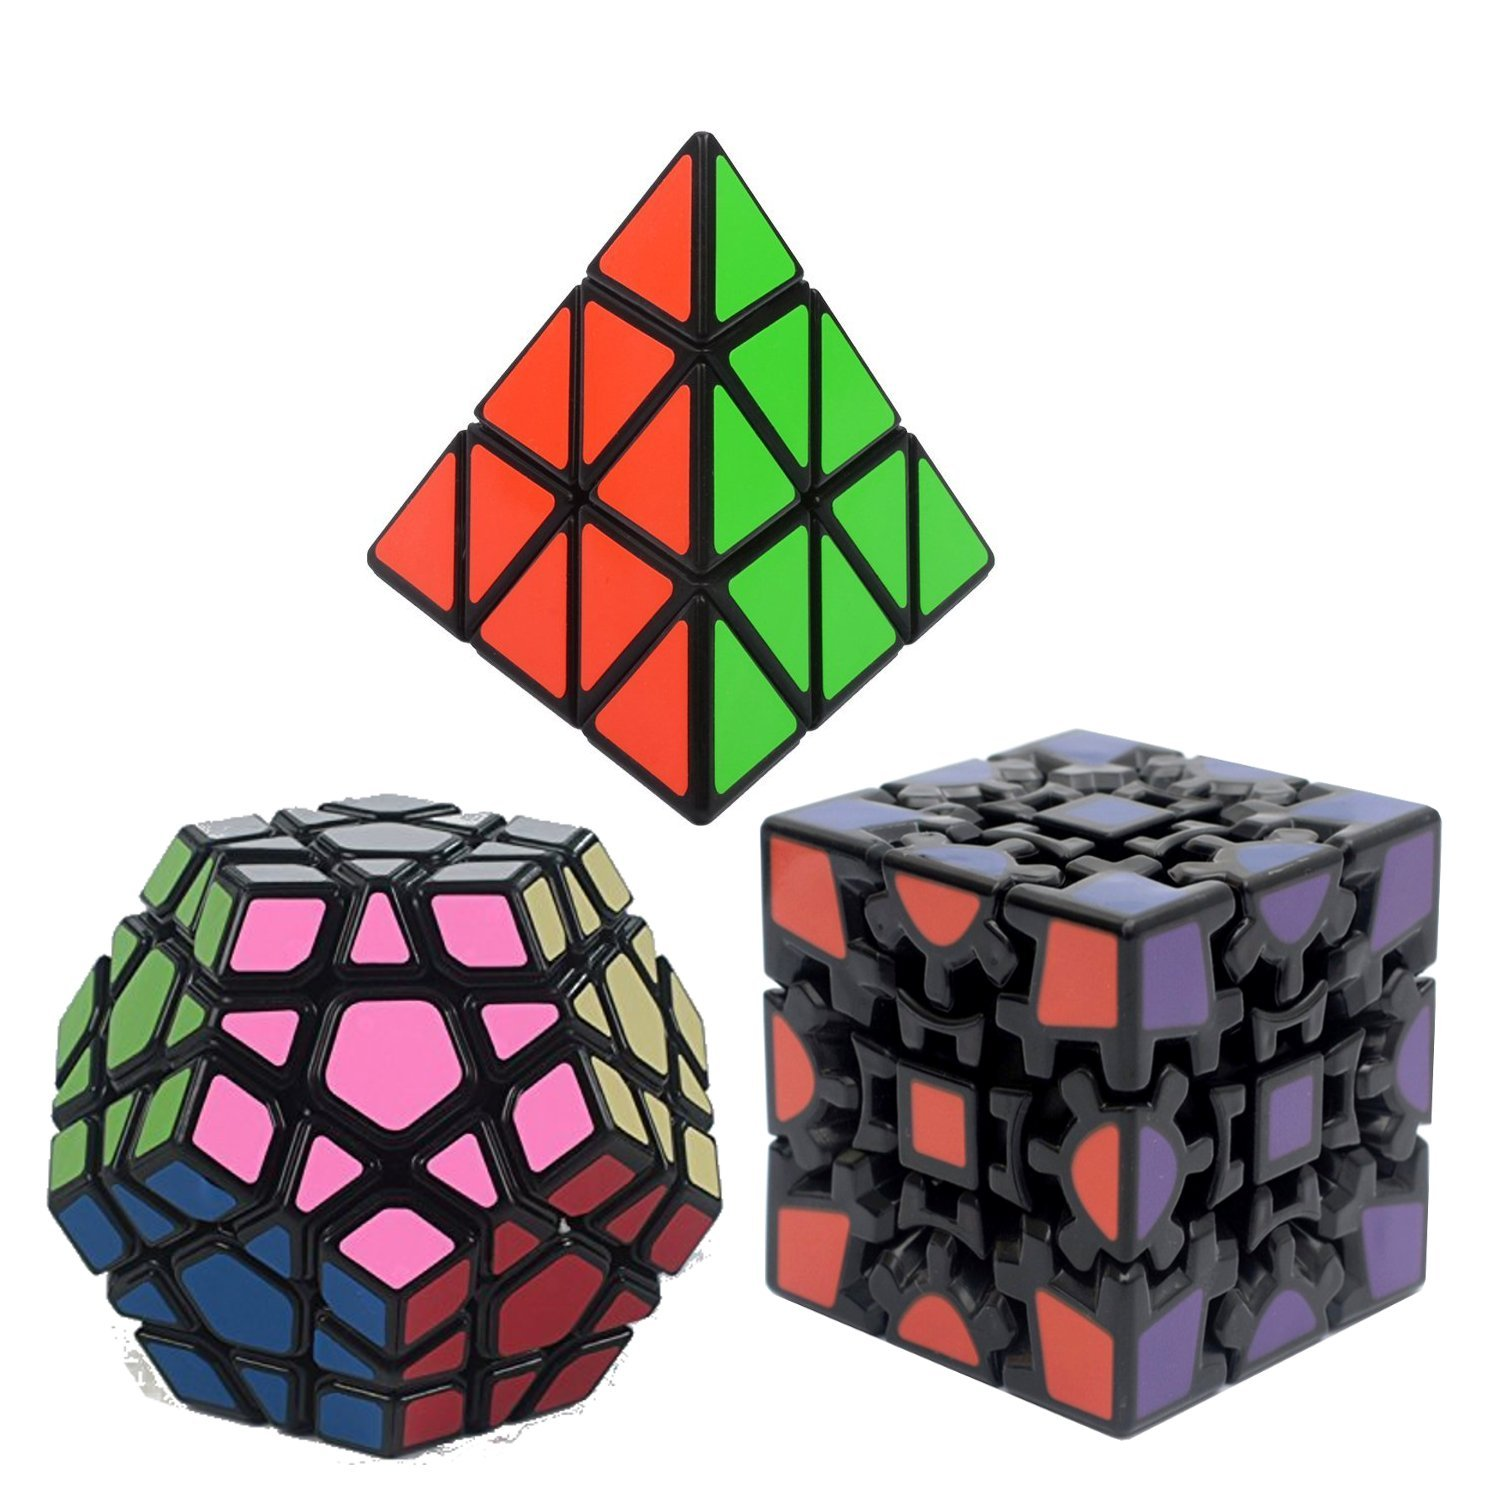 Bundle Pack Speed Cube Set of 3 Pyraminx Pyramid Speedcubing, Megaminx  Cube, 3D GEAR MAGIC Cube Twisty Puzzle Great Brain Teasing Game For Kids  and